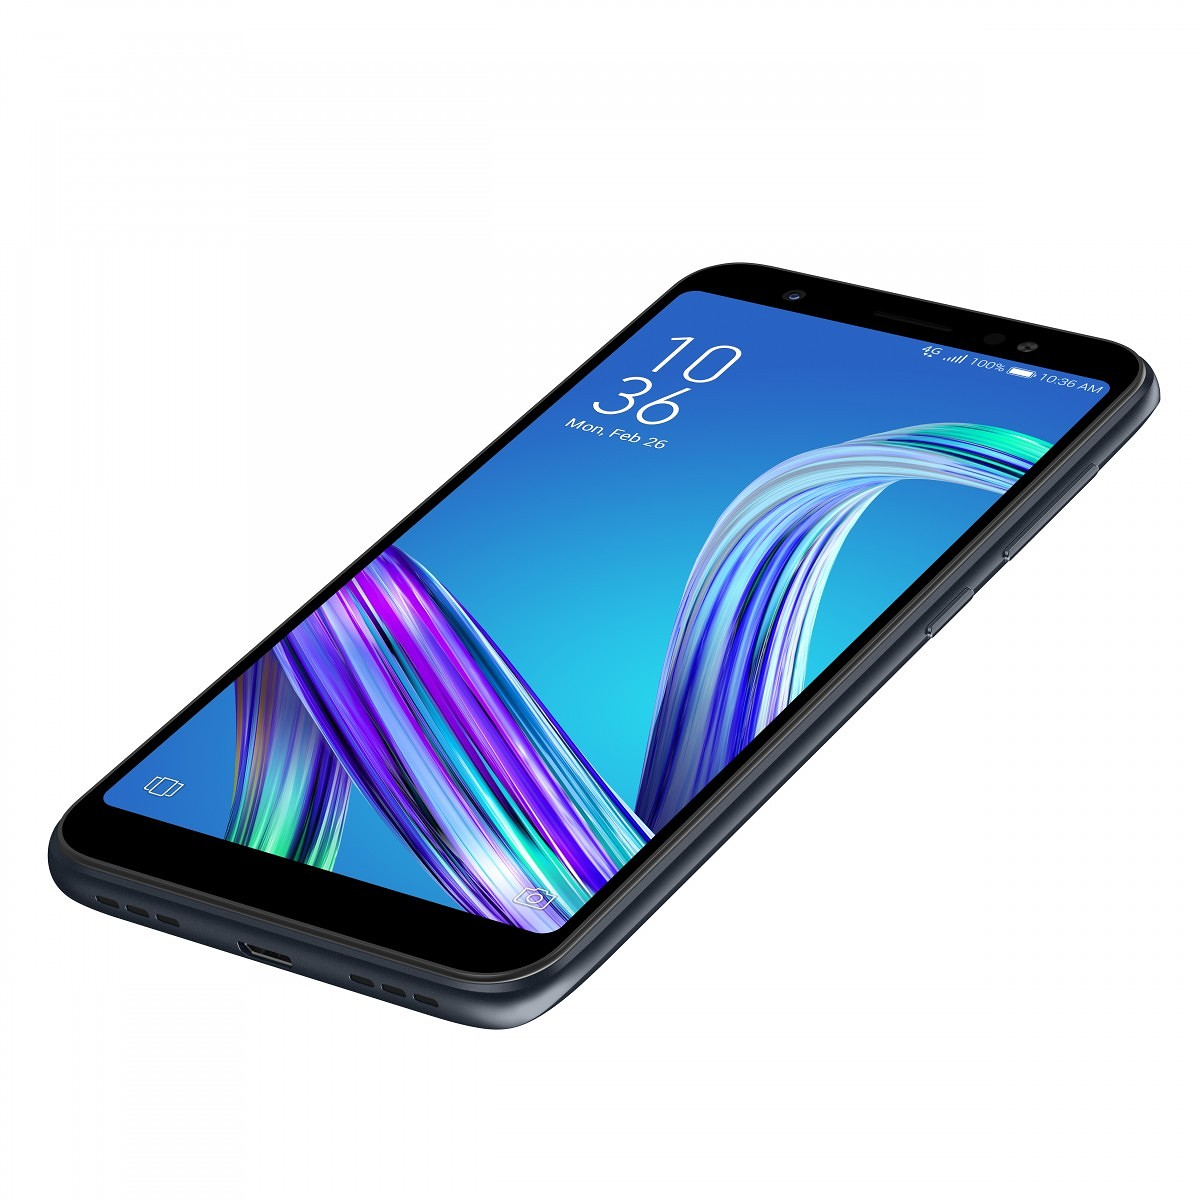 Asus ZenFone Lite (L1) and ZenFone Max (M1) launch in India: What